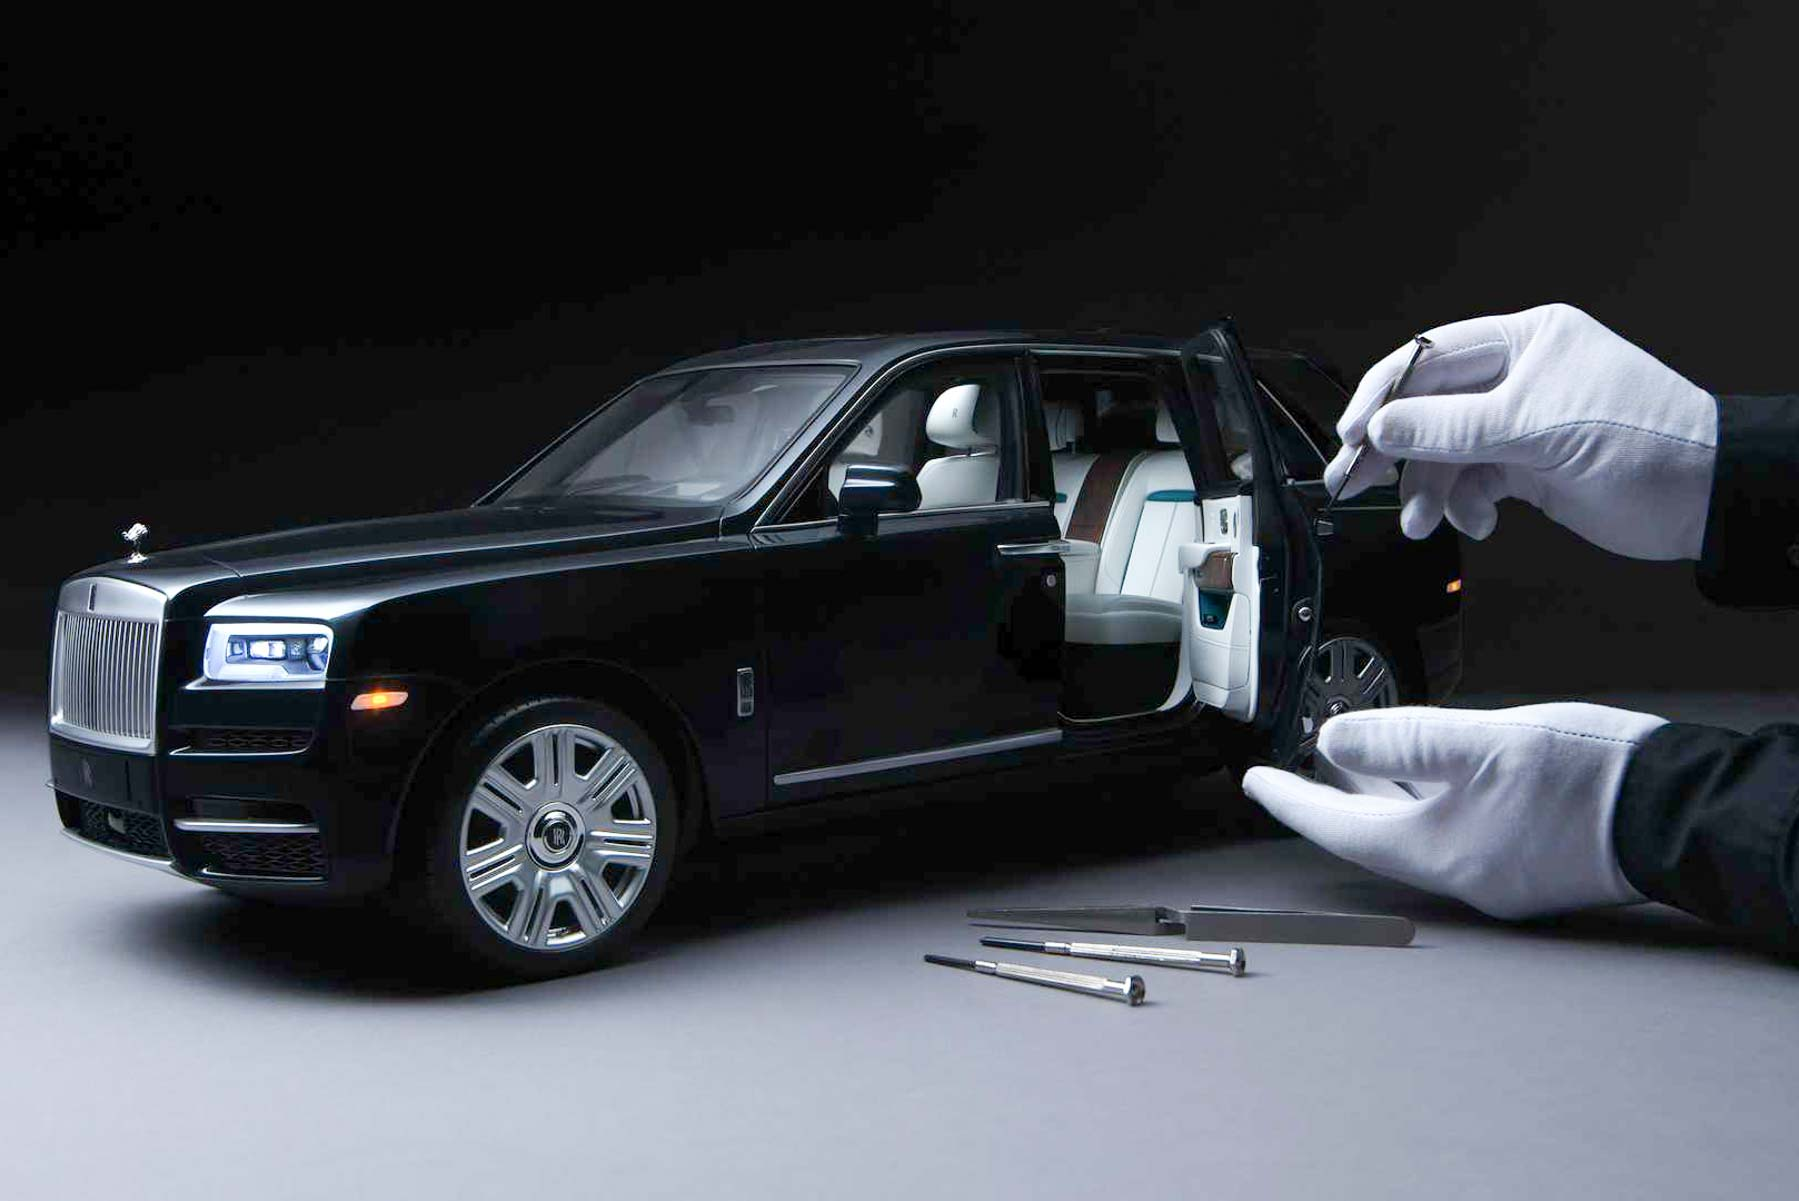 Rolls Royce Cullinan Official Scale Model Priced At Rs. 28 Lakh (£30,000)